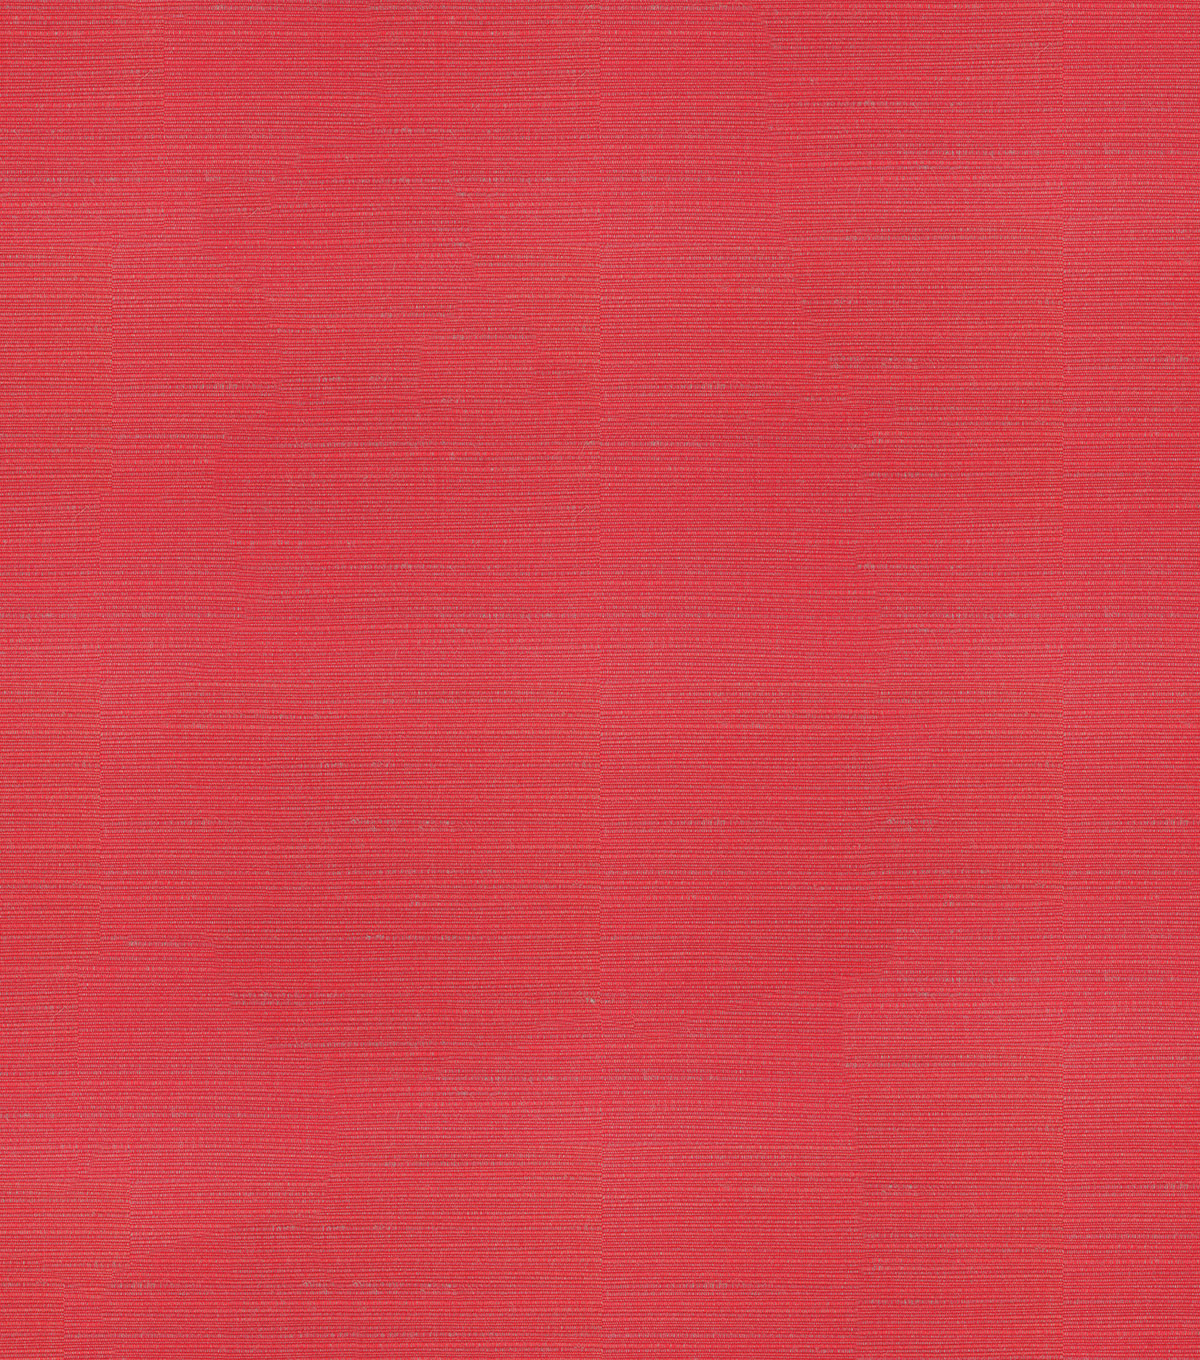 Sunbrella Outdoor Fabric 54\u0022-Dupione Crimson